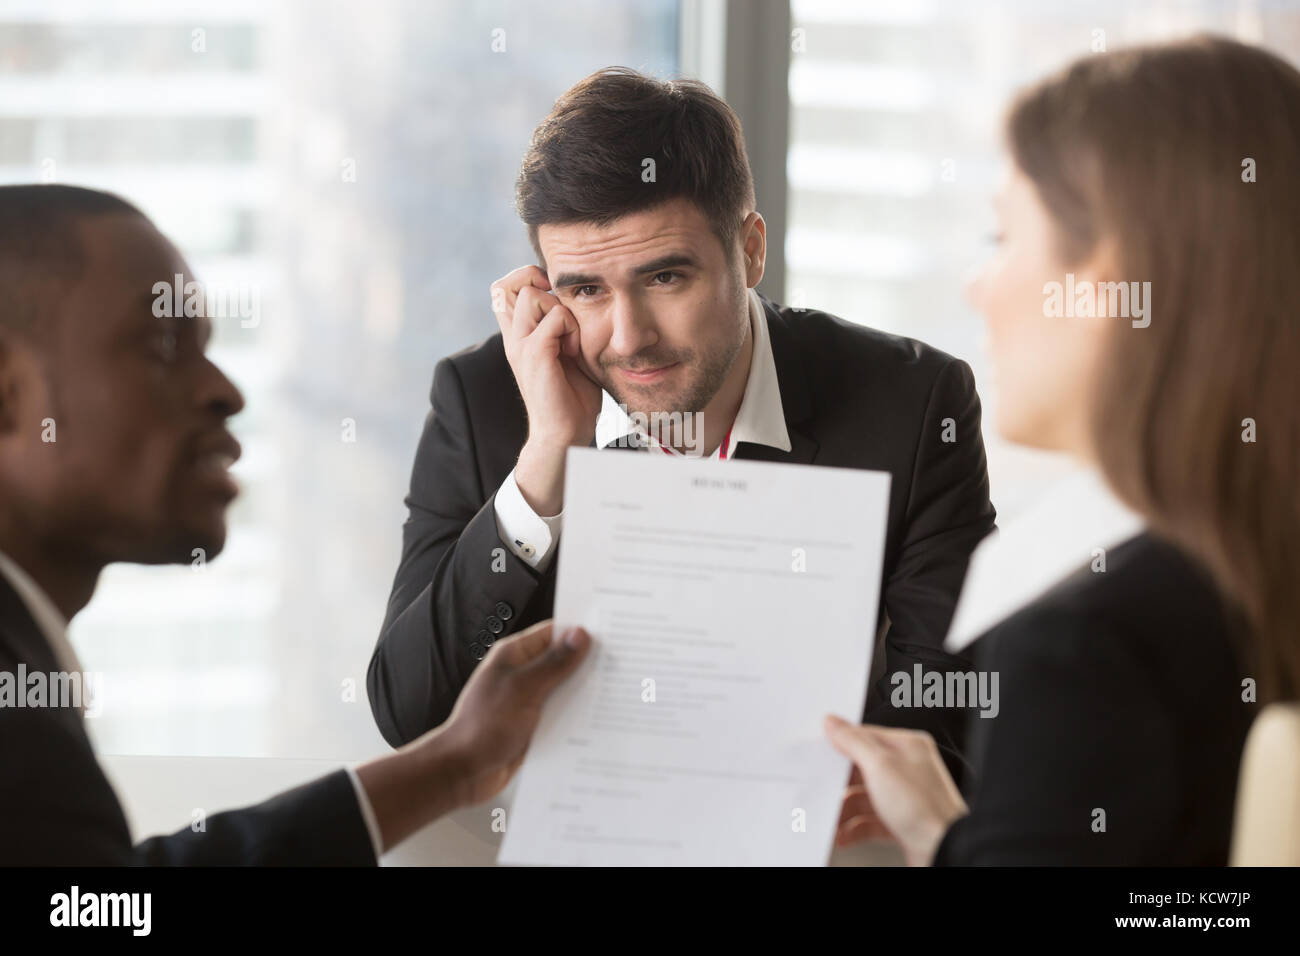 Worried male job candidate interested in company vacancy anxiously looking on multinational recruiters analyzing - Stock Image